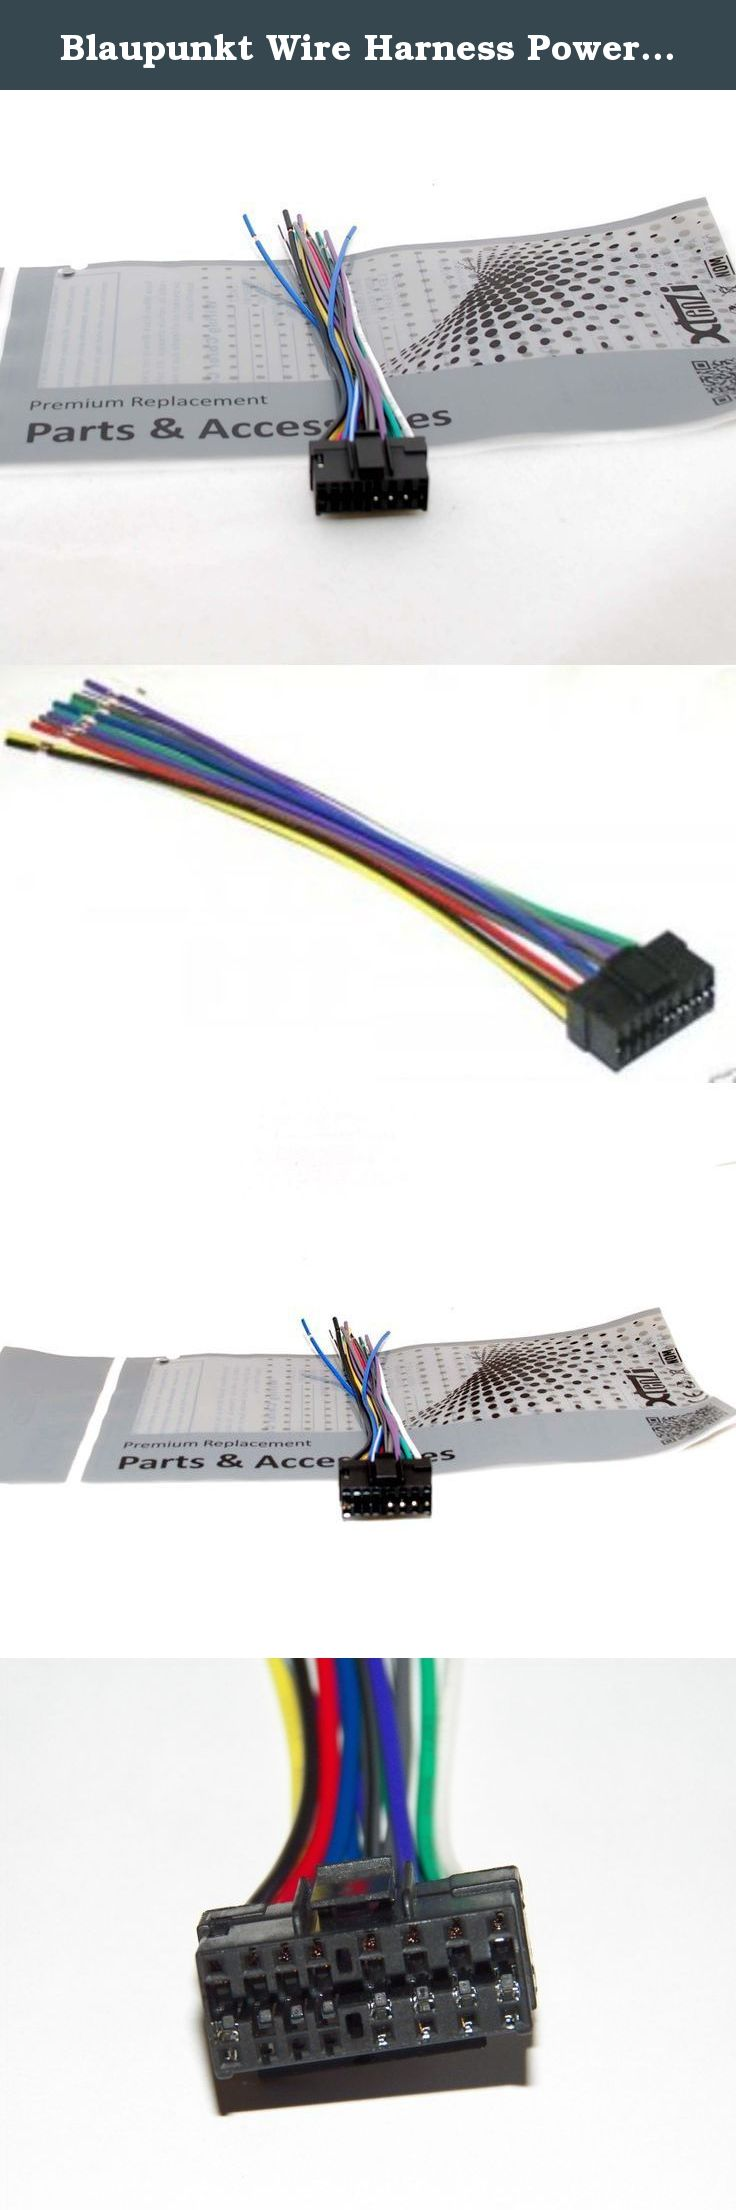 small resolution of blaupunkt wire harness power plug cd mp3 dvd car stereo head unit 16 pin